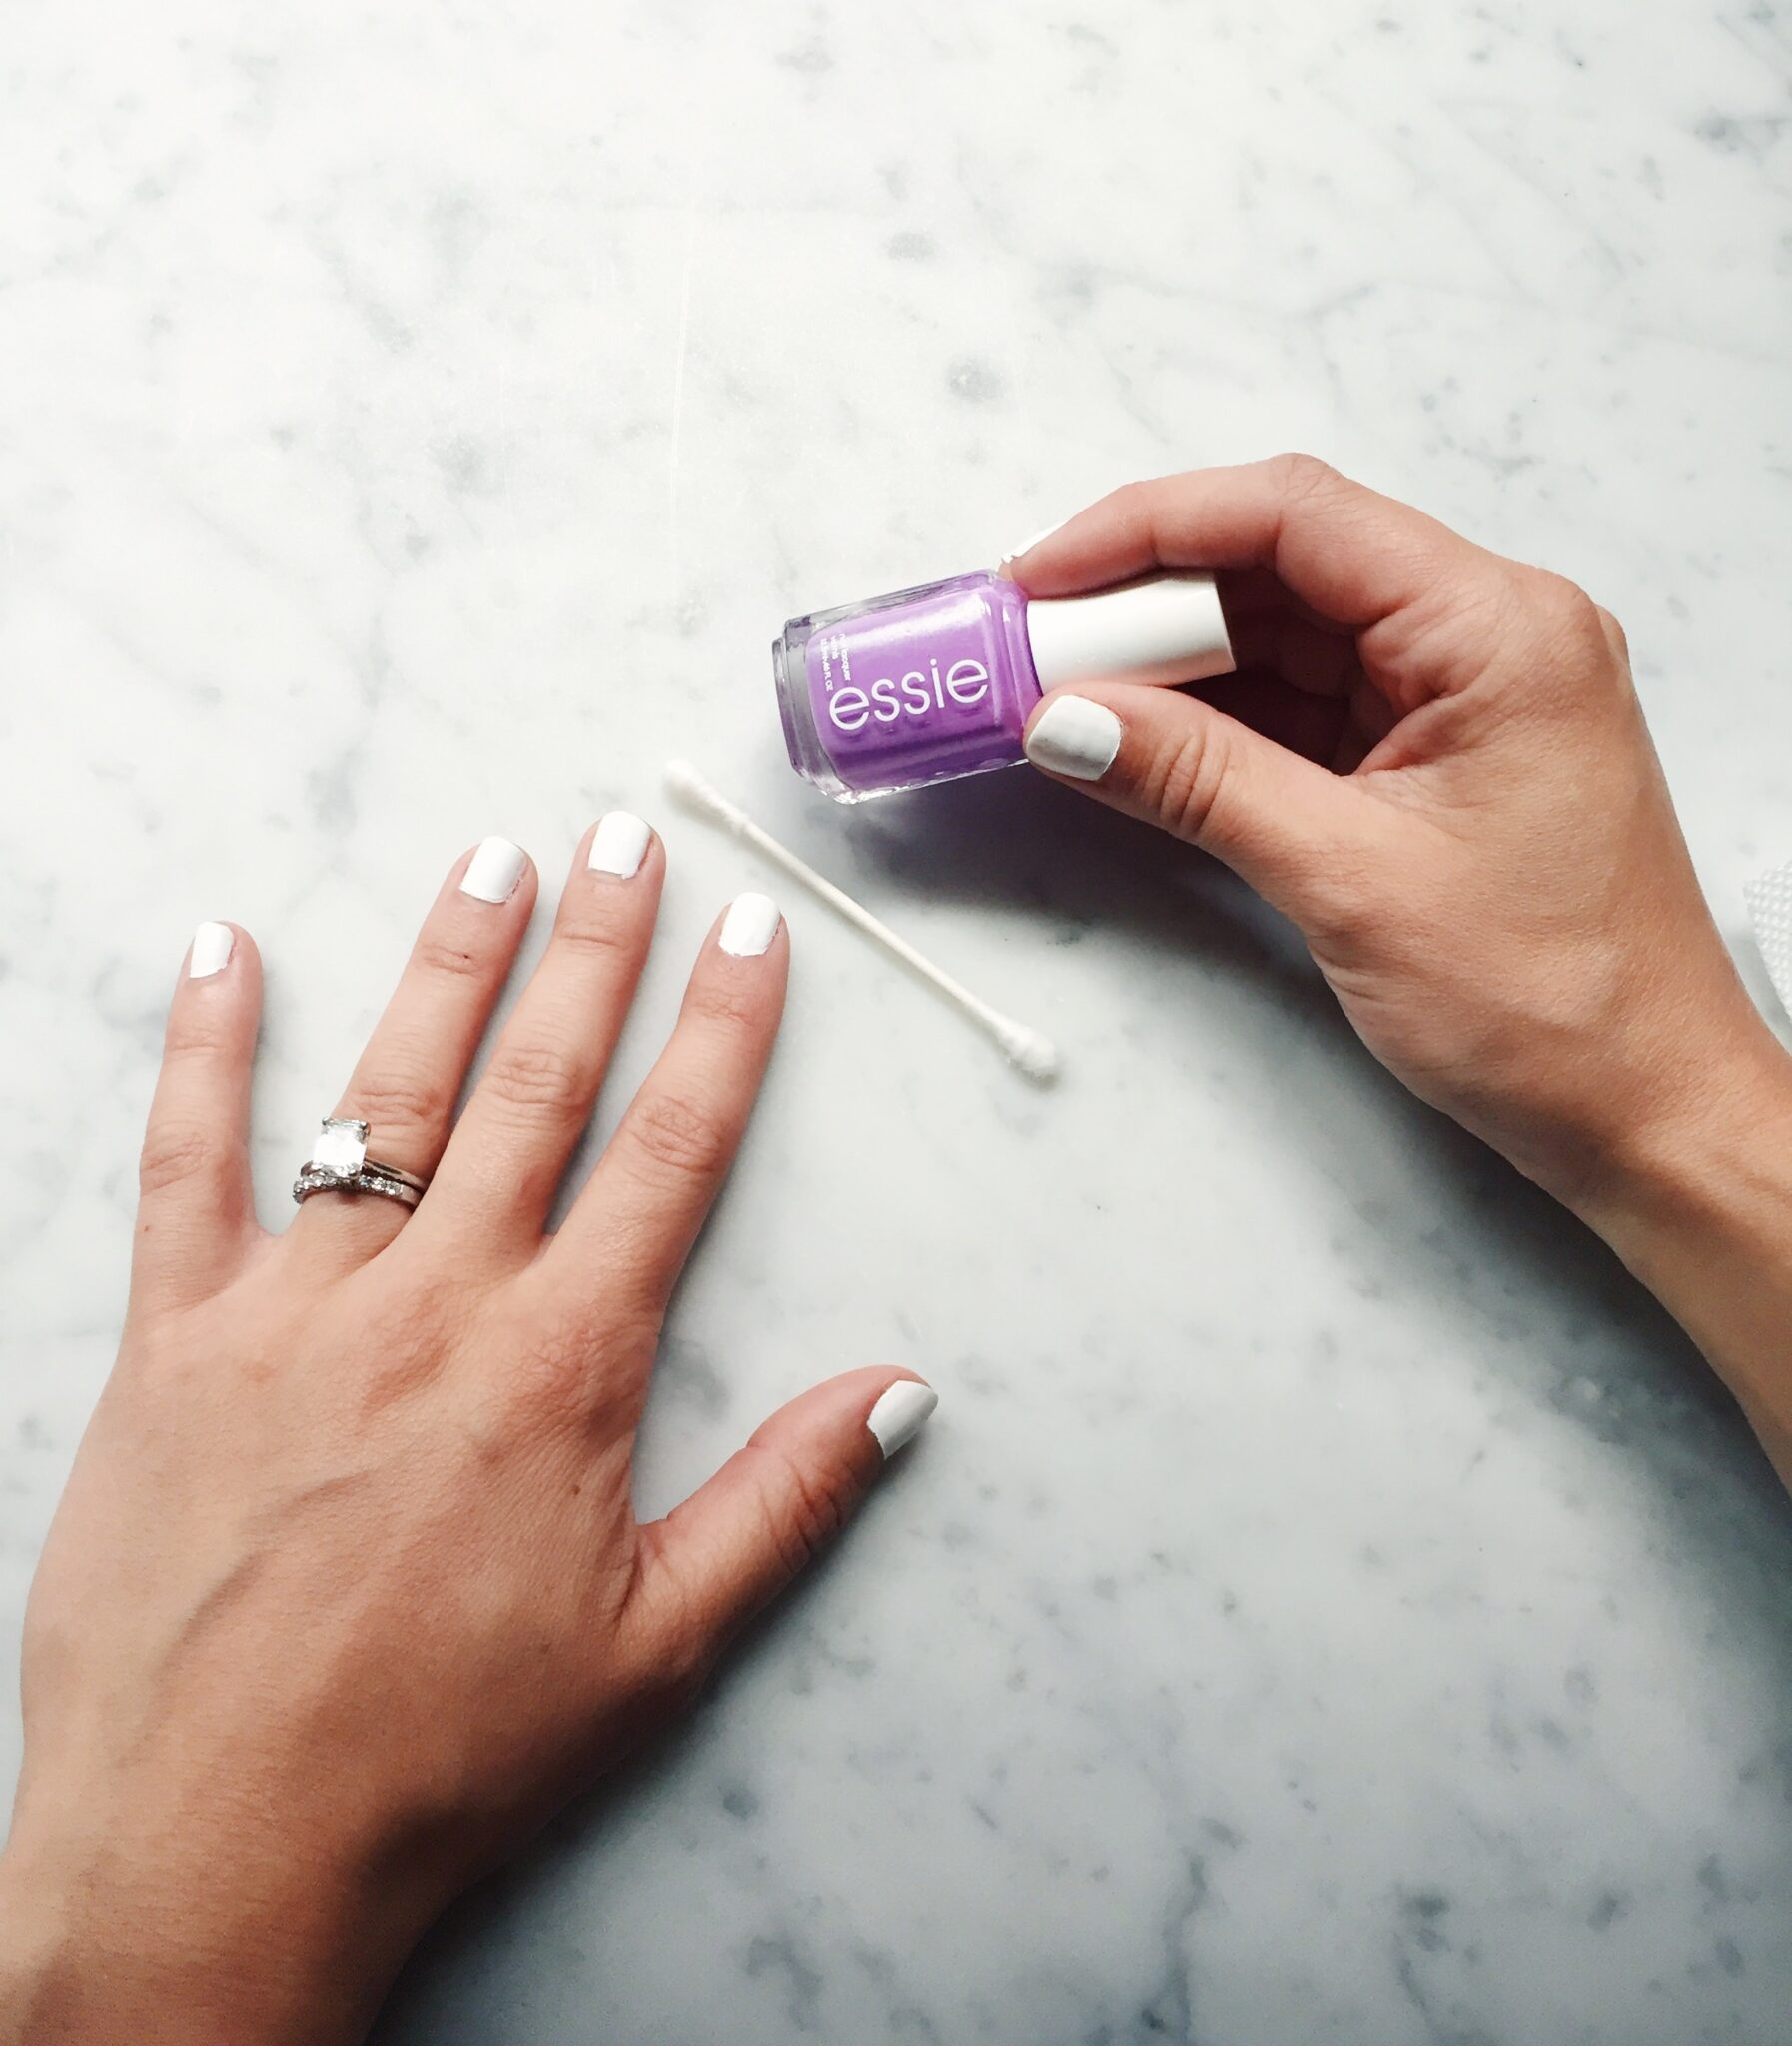 white base nail polish with essie purple nail polish and a q tip